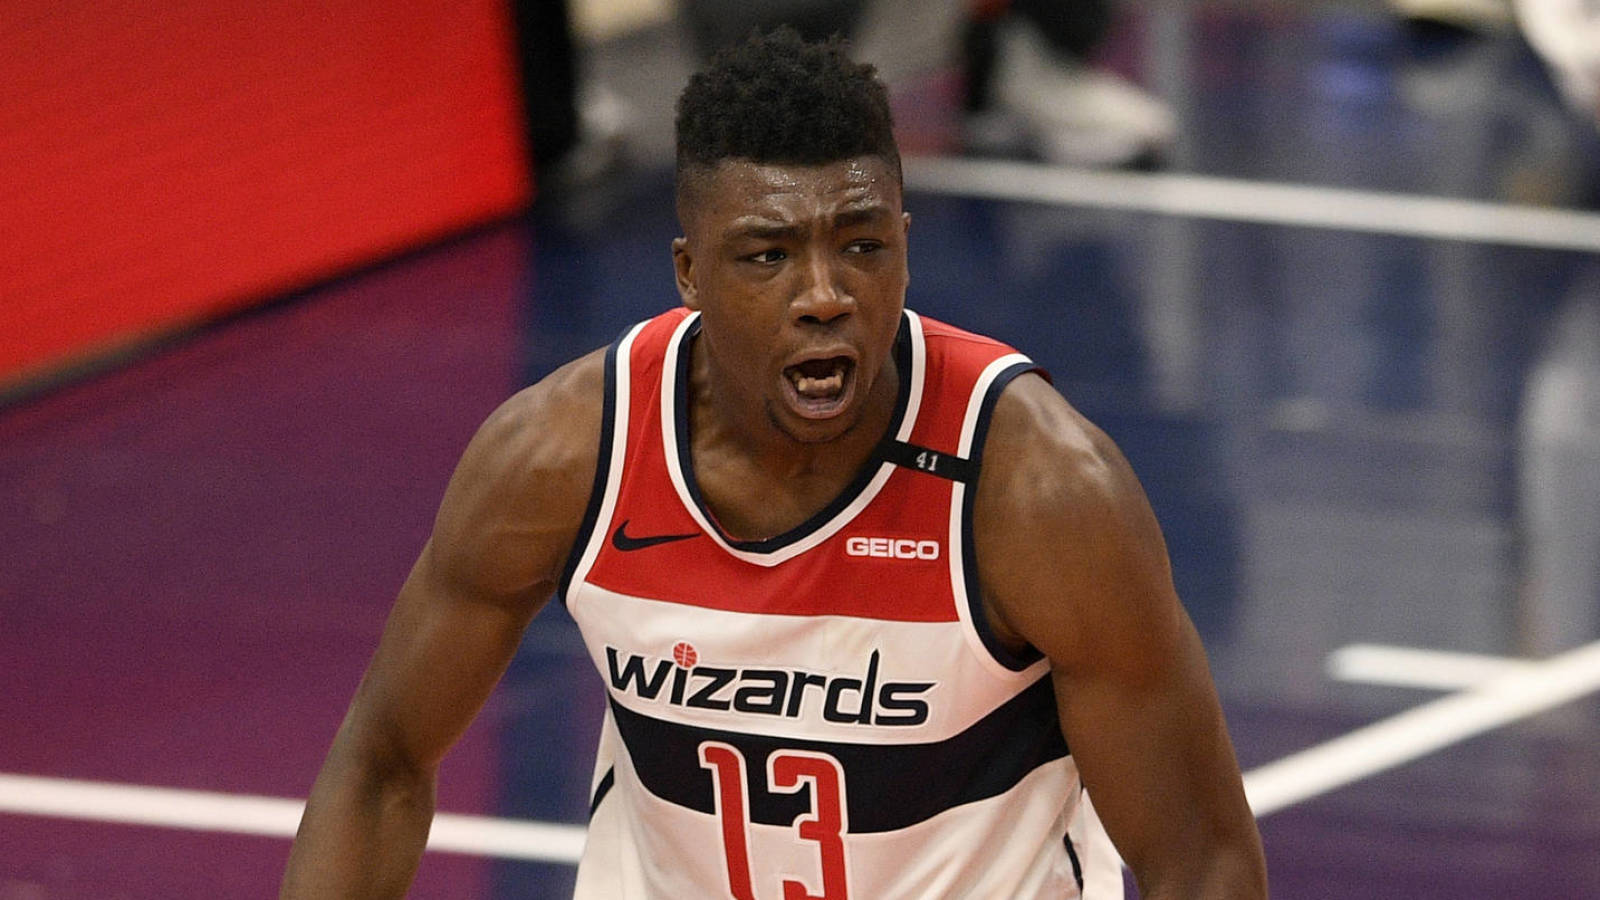 Wizards Given 4 16m Dpe For Thomas Bryant Yardbarker